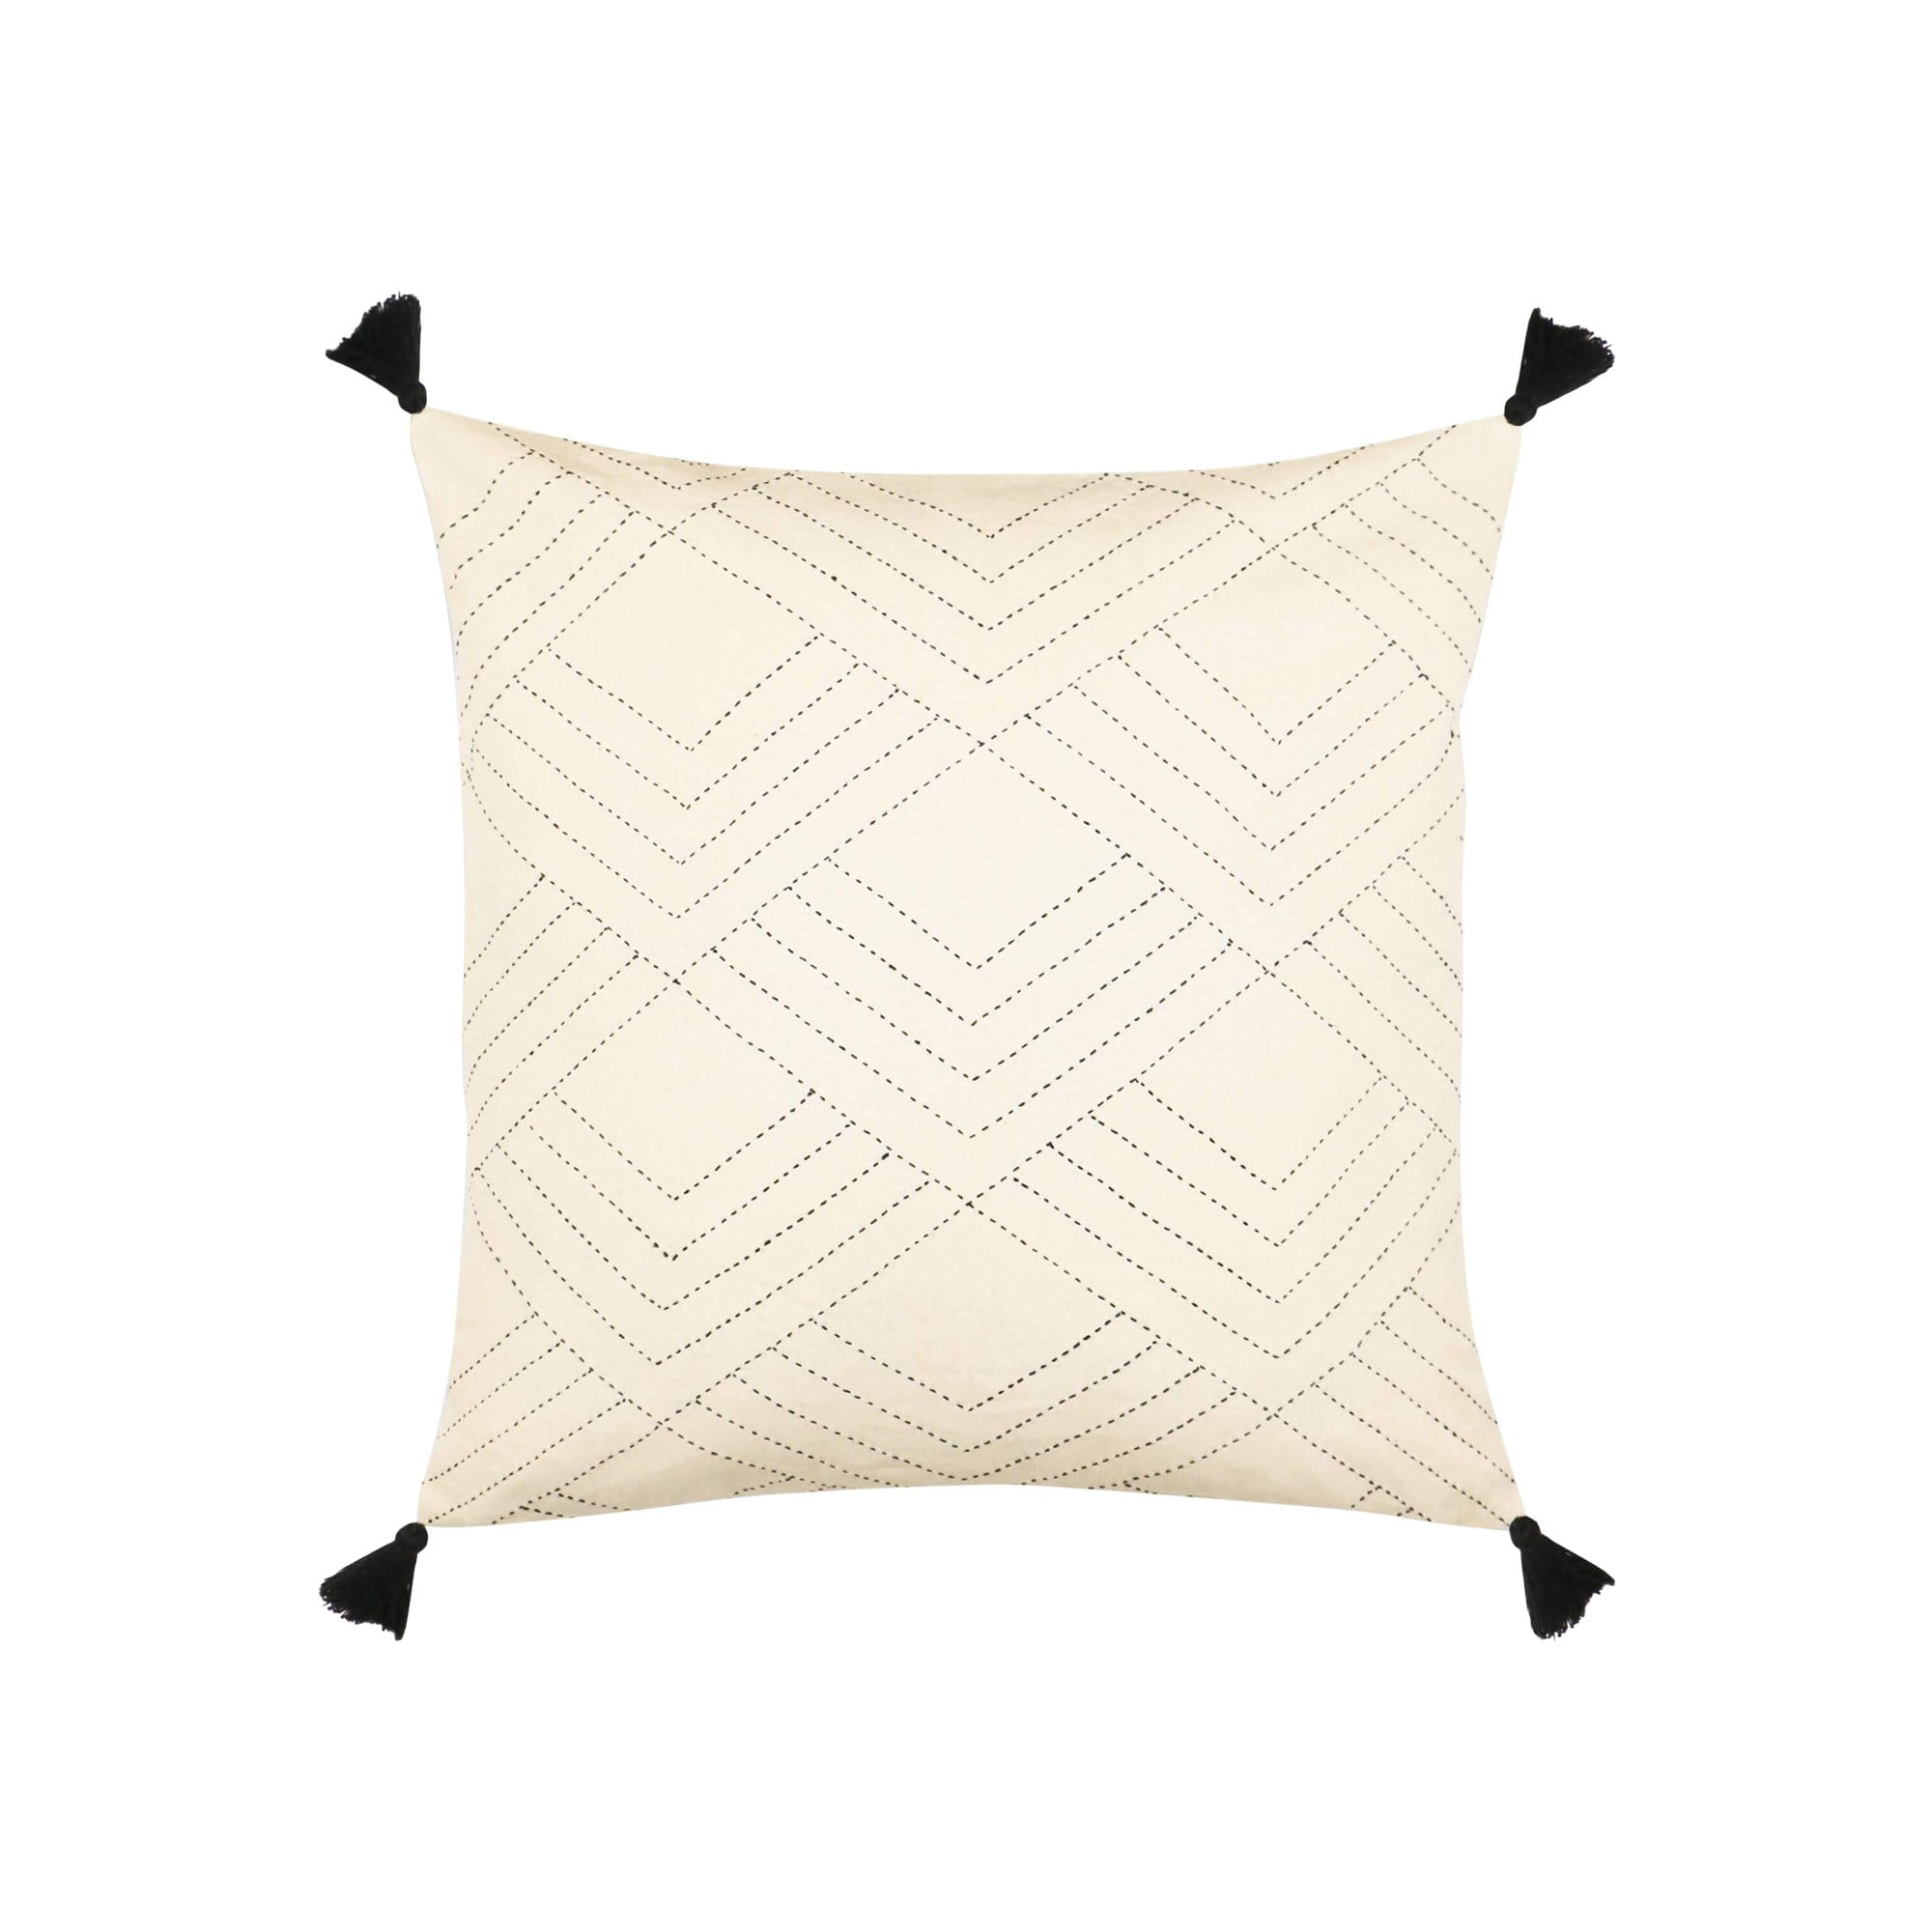 Anchal Project Cushions + Throws Bone Tilt Throw Pillow